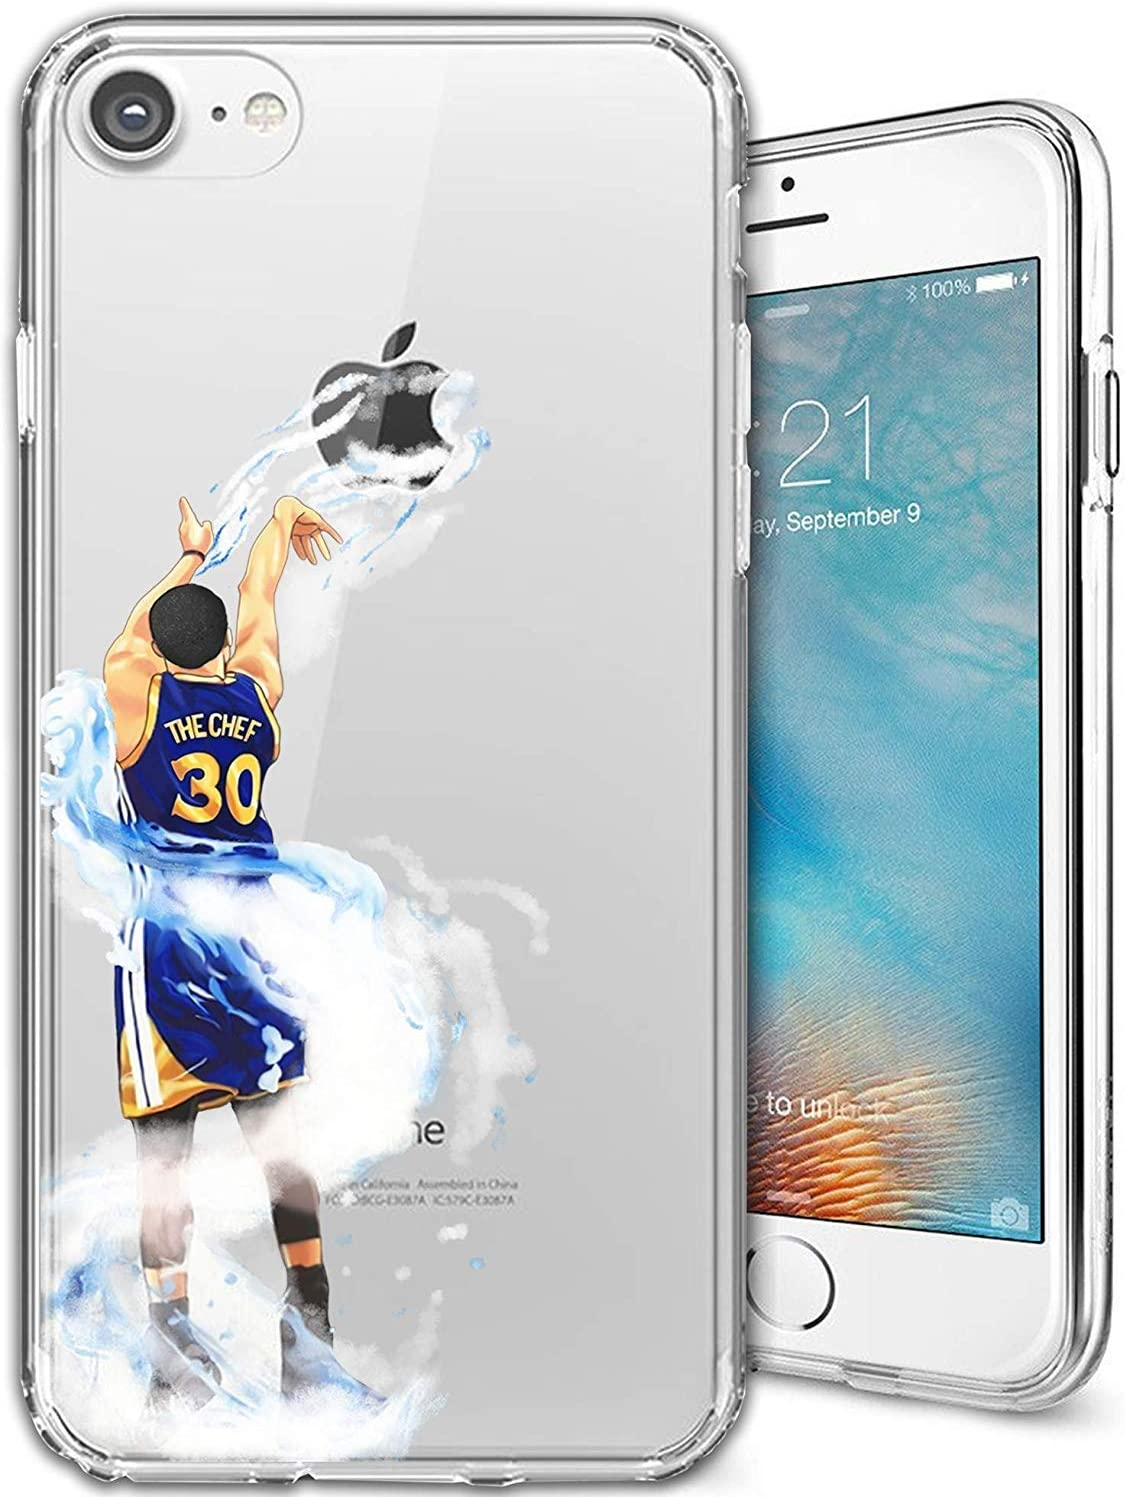 ETERINS Cases Ultra Slim [Crystal Clear] [Hardwood Series] Soft Transparent TPU Case Cover - Splash Curry for iPhone 8 7 Plus